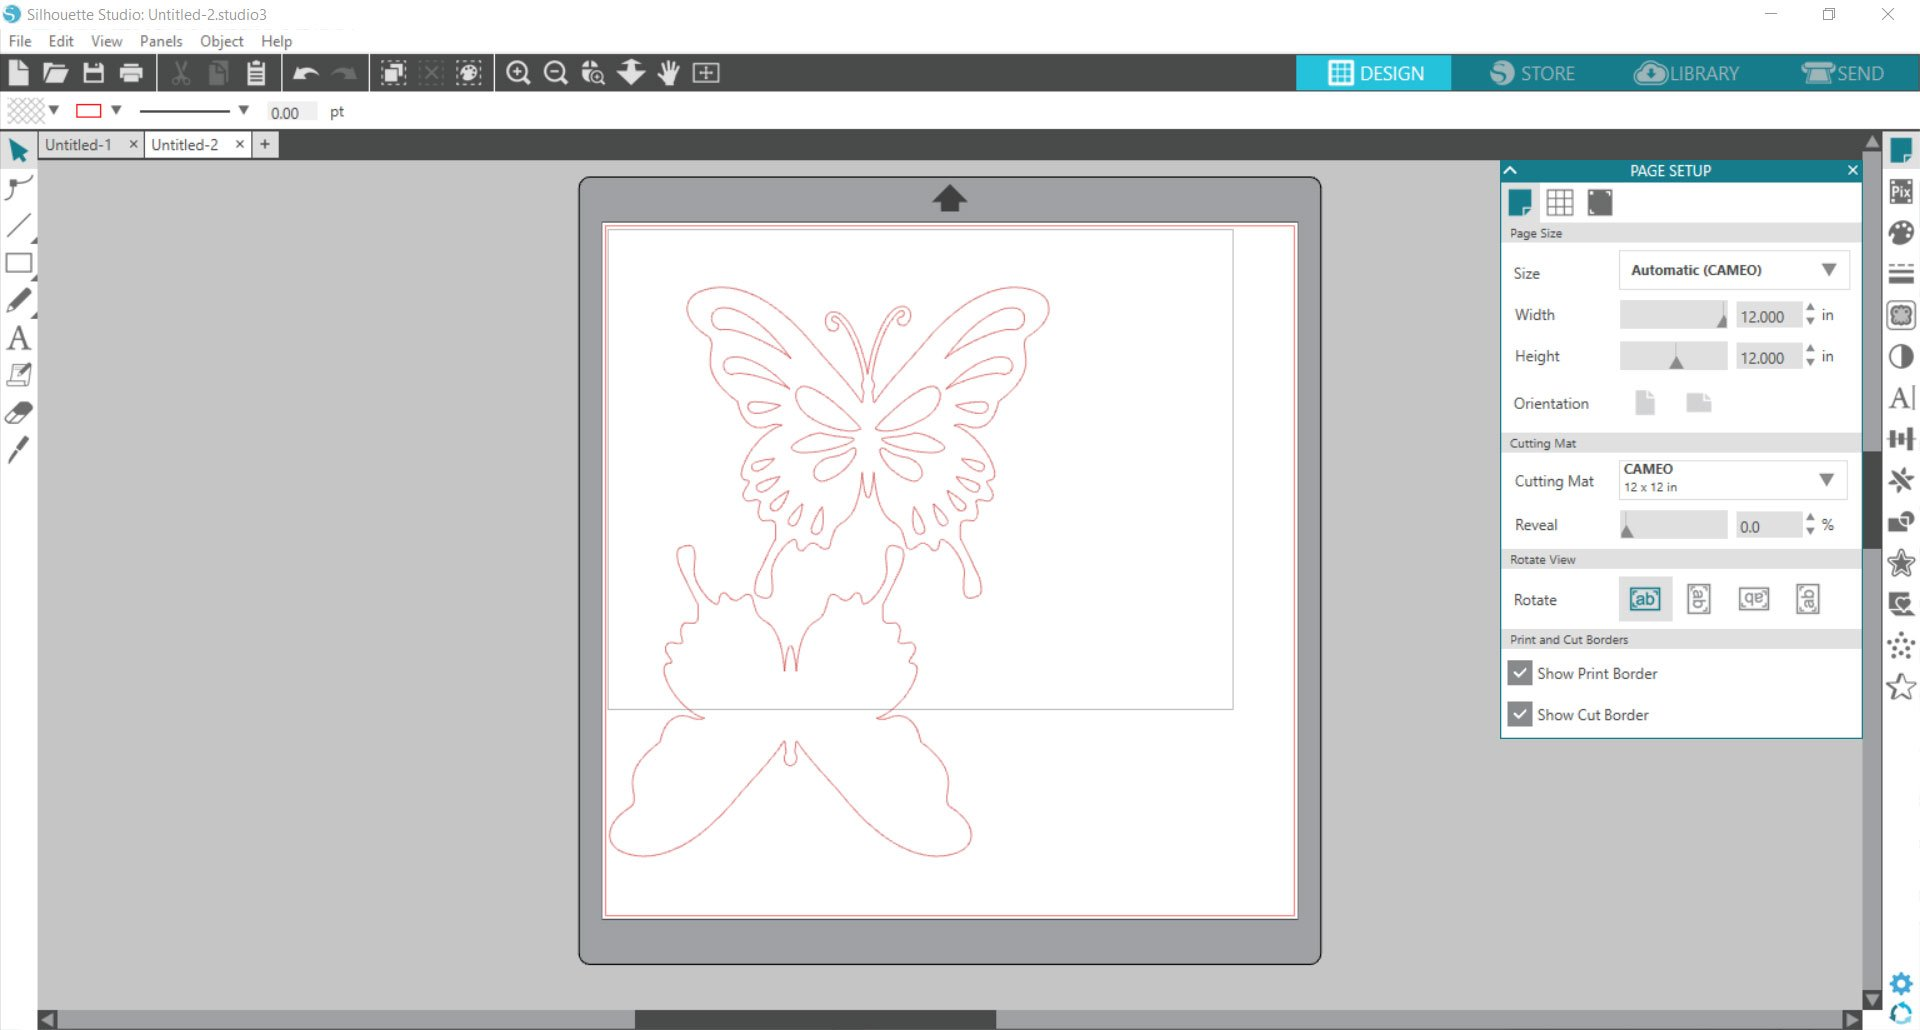 Silhouette Studio - butterfly image added to canvas